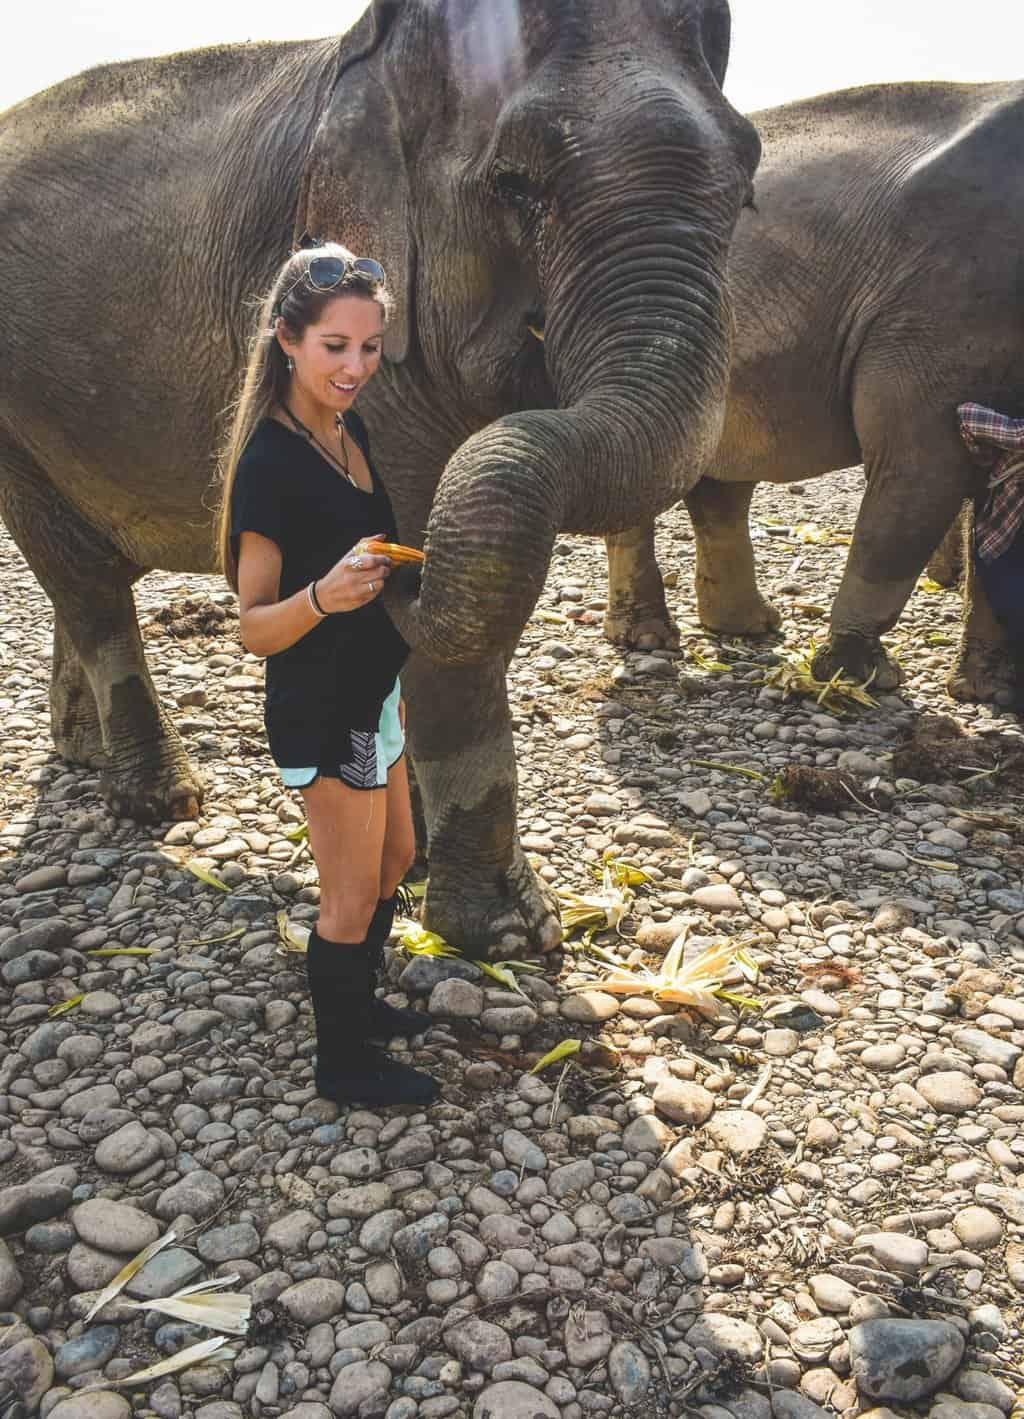 Meeting the elephants at Mandalao Elephant Sanctuary